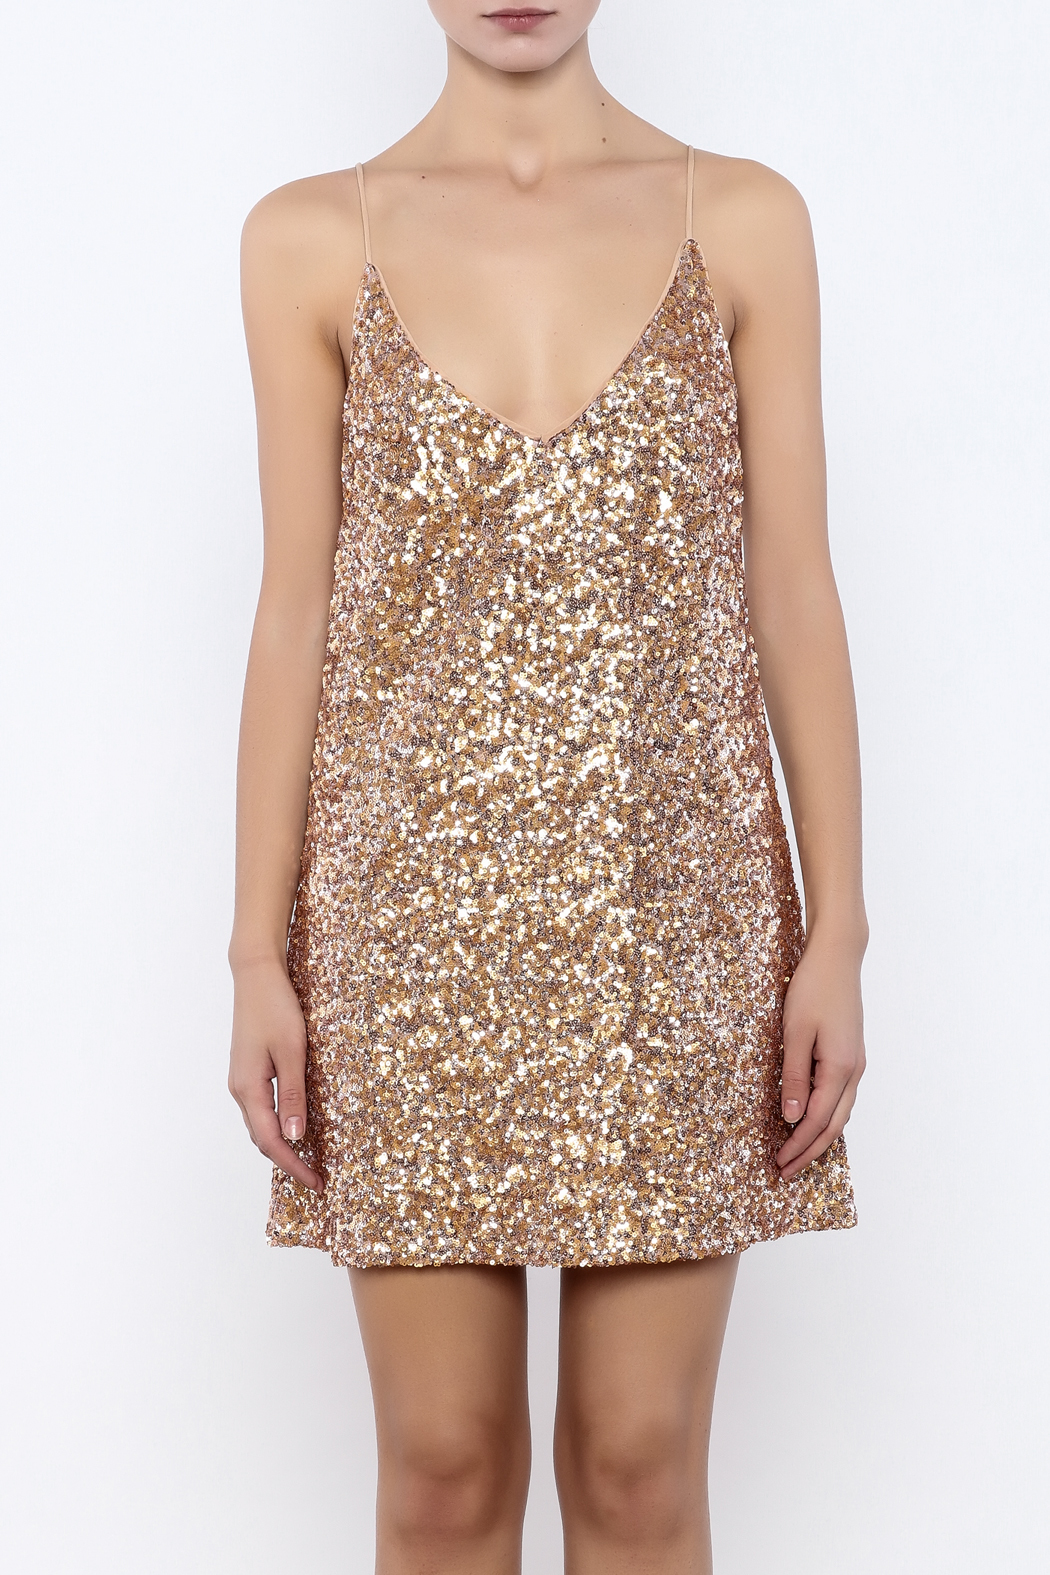 Honey Punch Sequin Dress from New York by Luna — Shoptiques